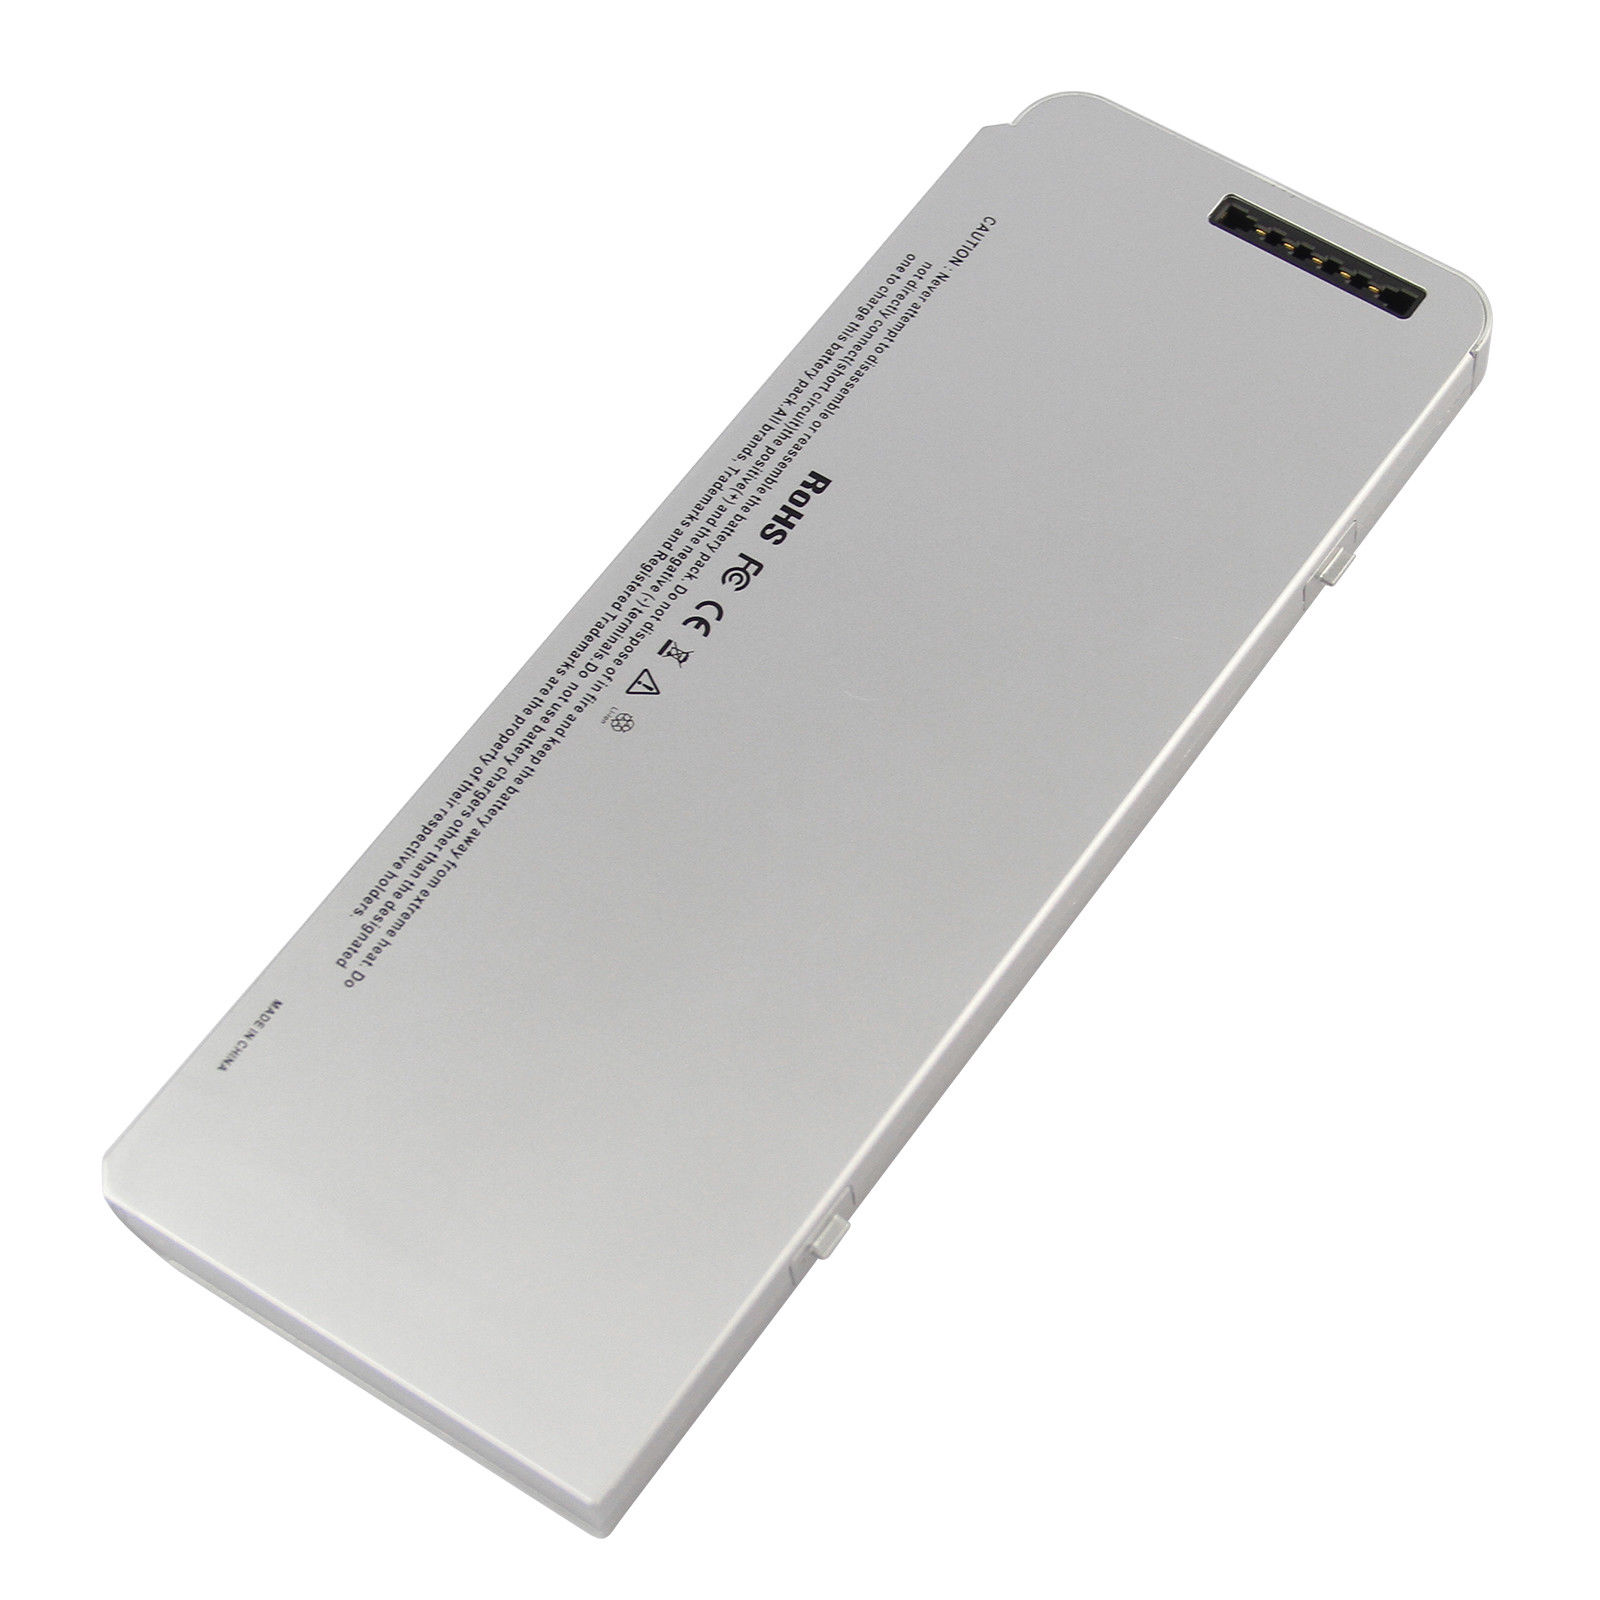 Replacement Apple MB771J/A Battery